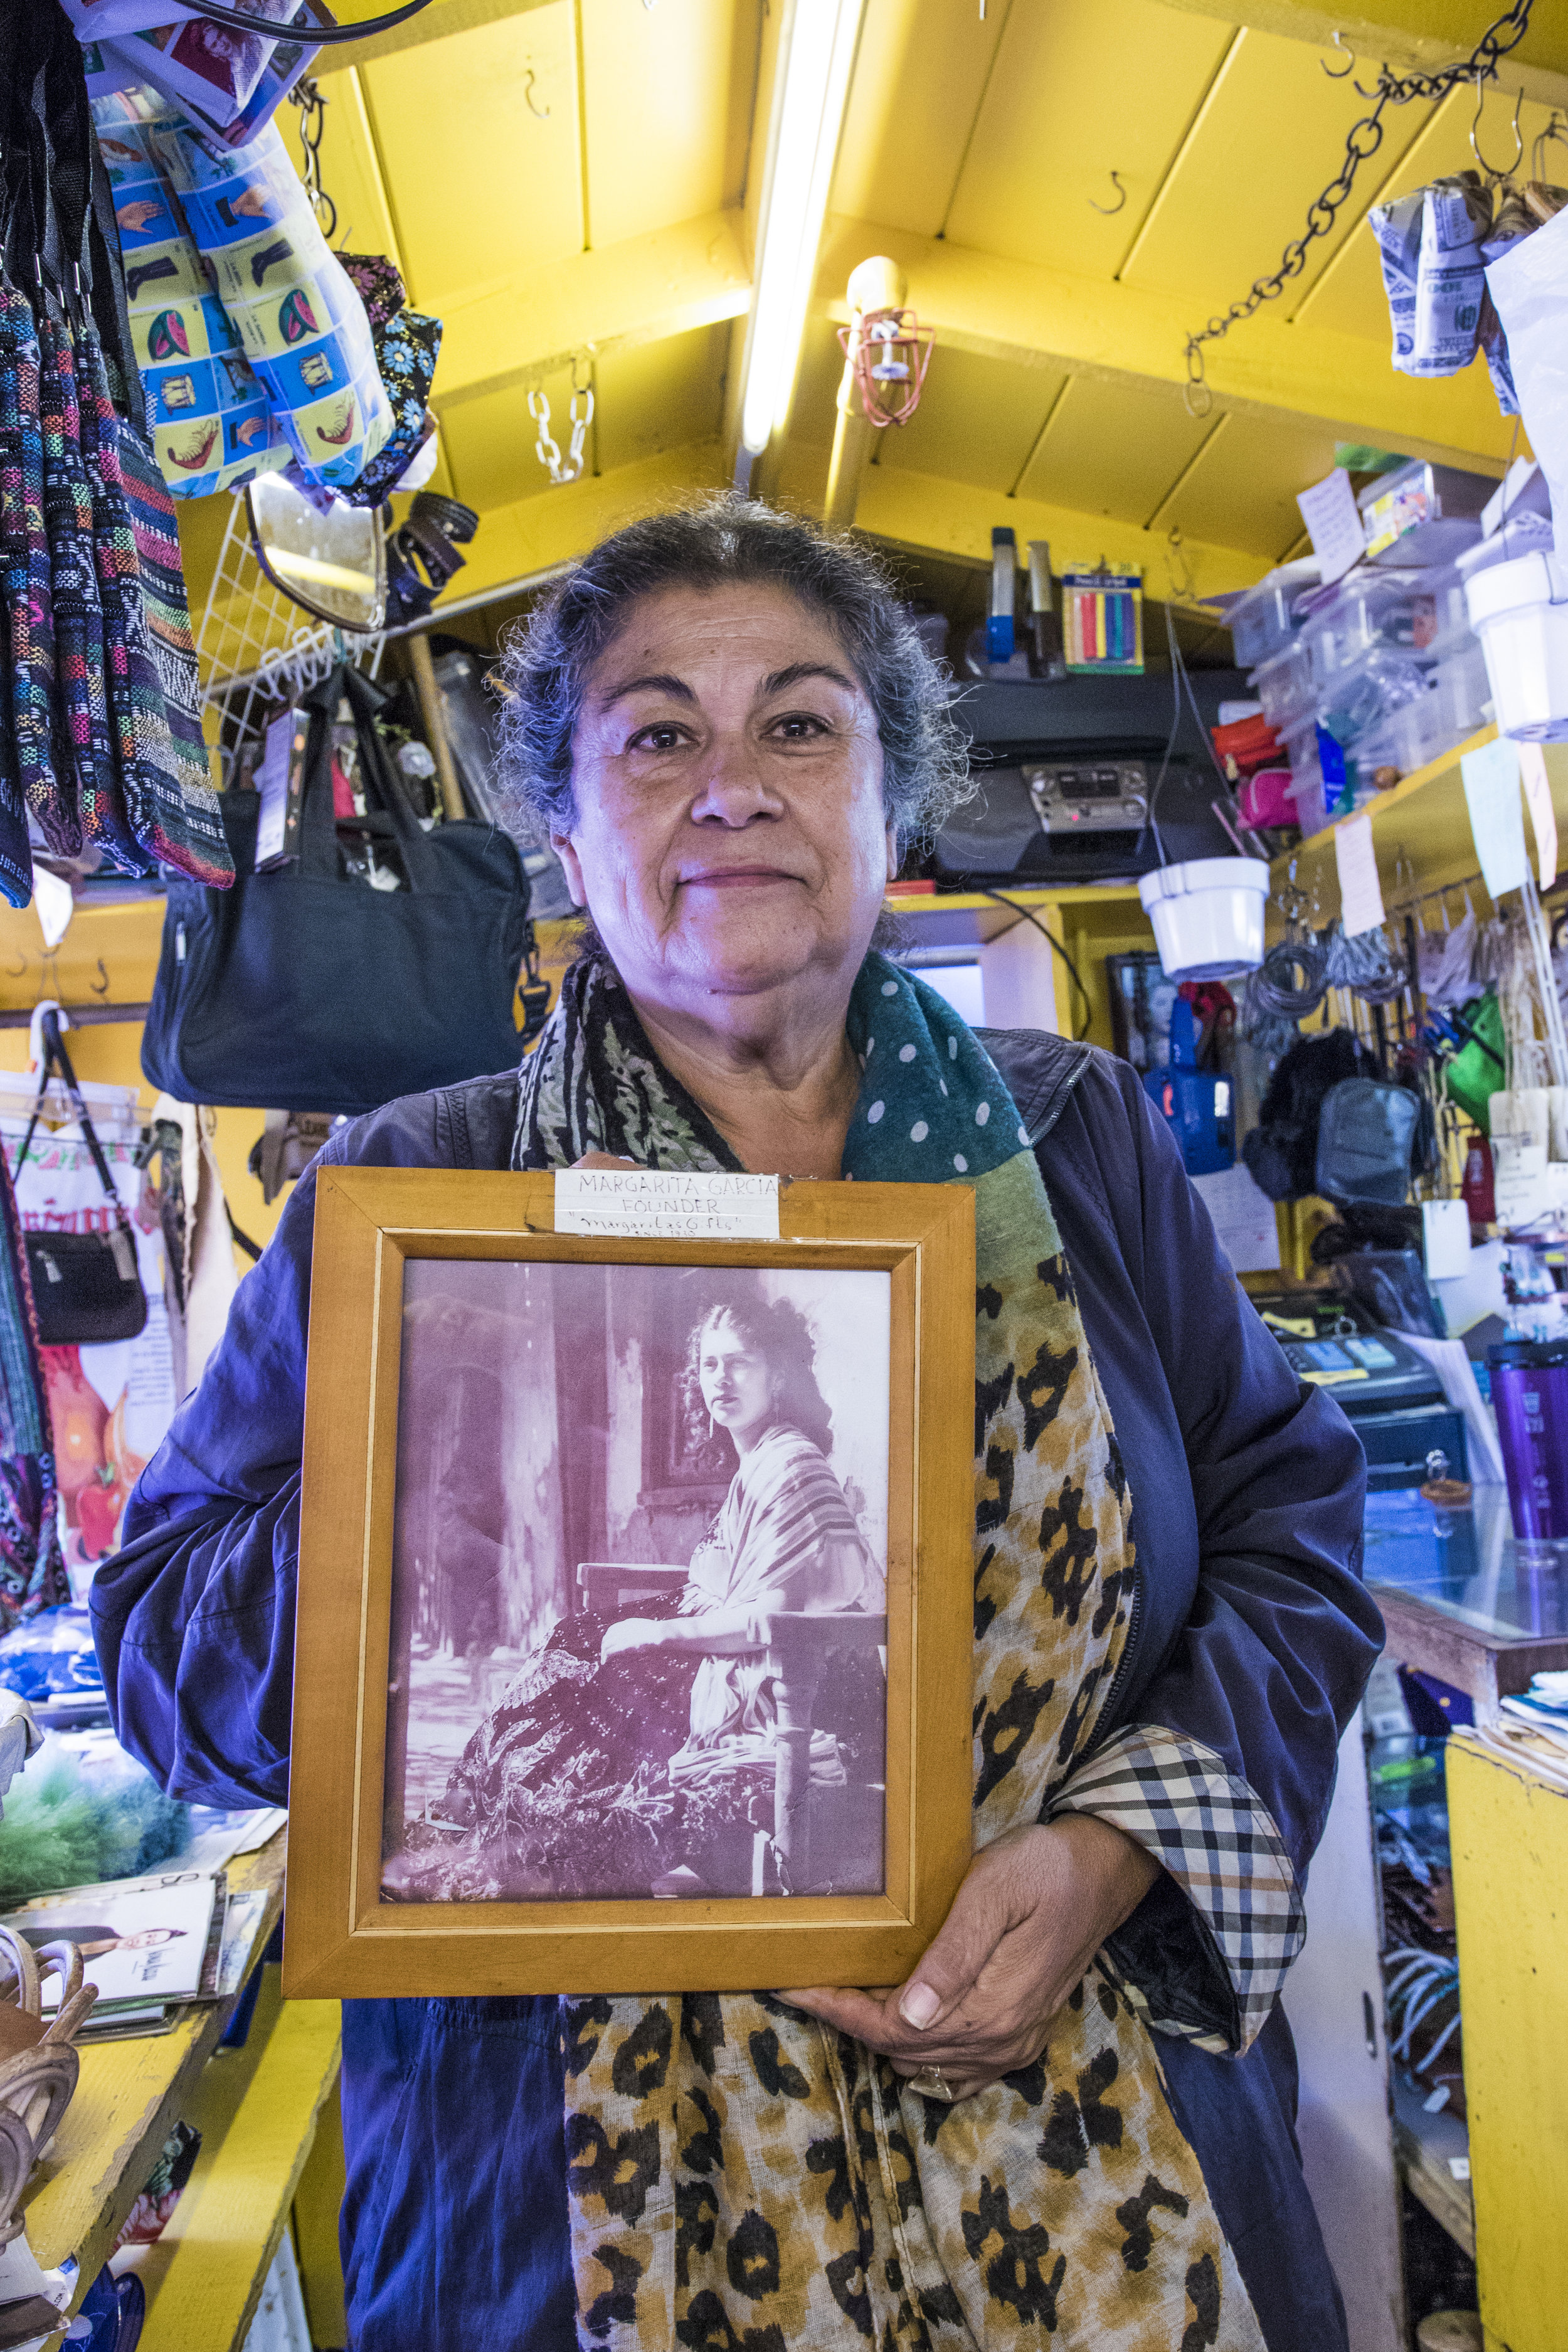 Emily Martinez, owner of Margartias, a shop on Olvera Street, holds a picture of her mother, Margarita Gomez. Their family is one of the seven original families to own shops on Olvera street after Margarita was given the store by Mrs. Sterling, the founder of Olvera Street. Emily says when she was a child in the 70s and 80s, the shop would be open until midnight everyday, with people trying to buy merchandise even as the store was closing. As of the last 7 years, business has slowed down tremendously. So much so that she now cannot afford to employ any workers and must run the shop and gather merchandise single handedly. (Zane Meyer-Thornton/Corsair Photo)